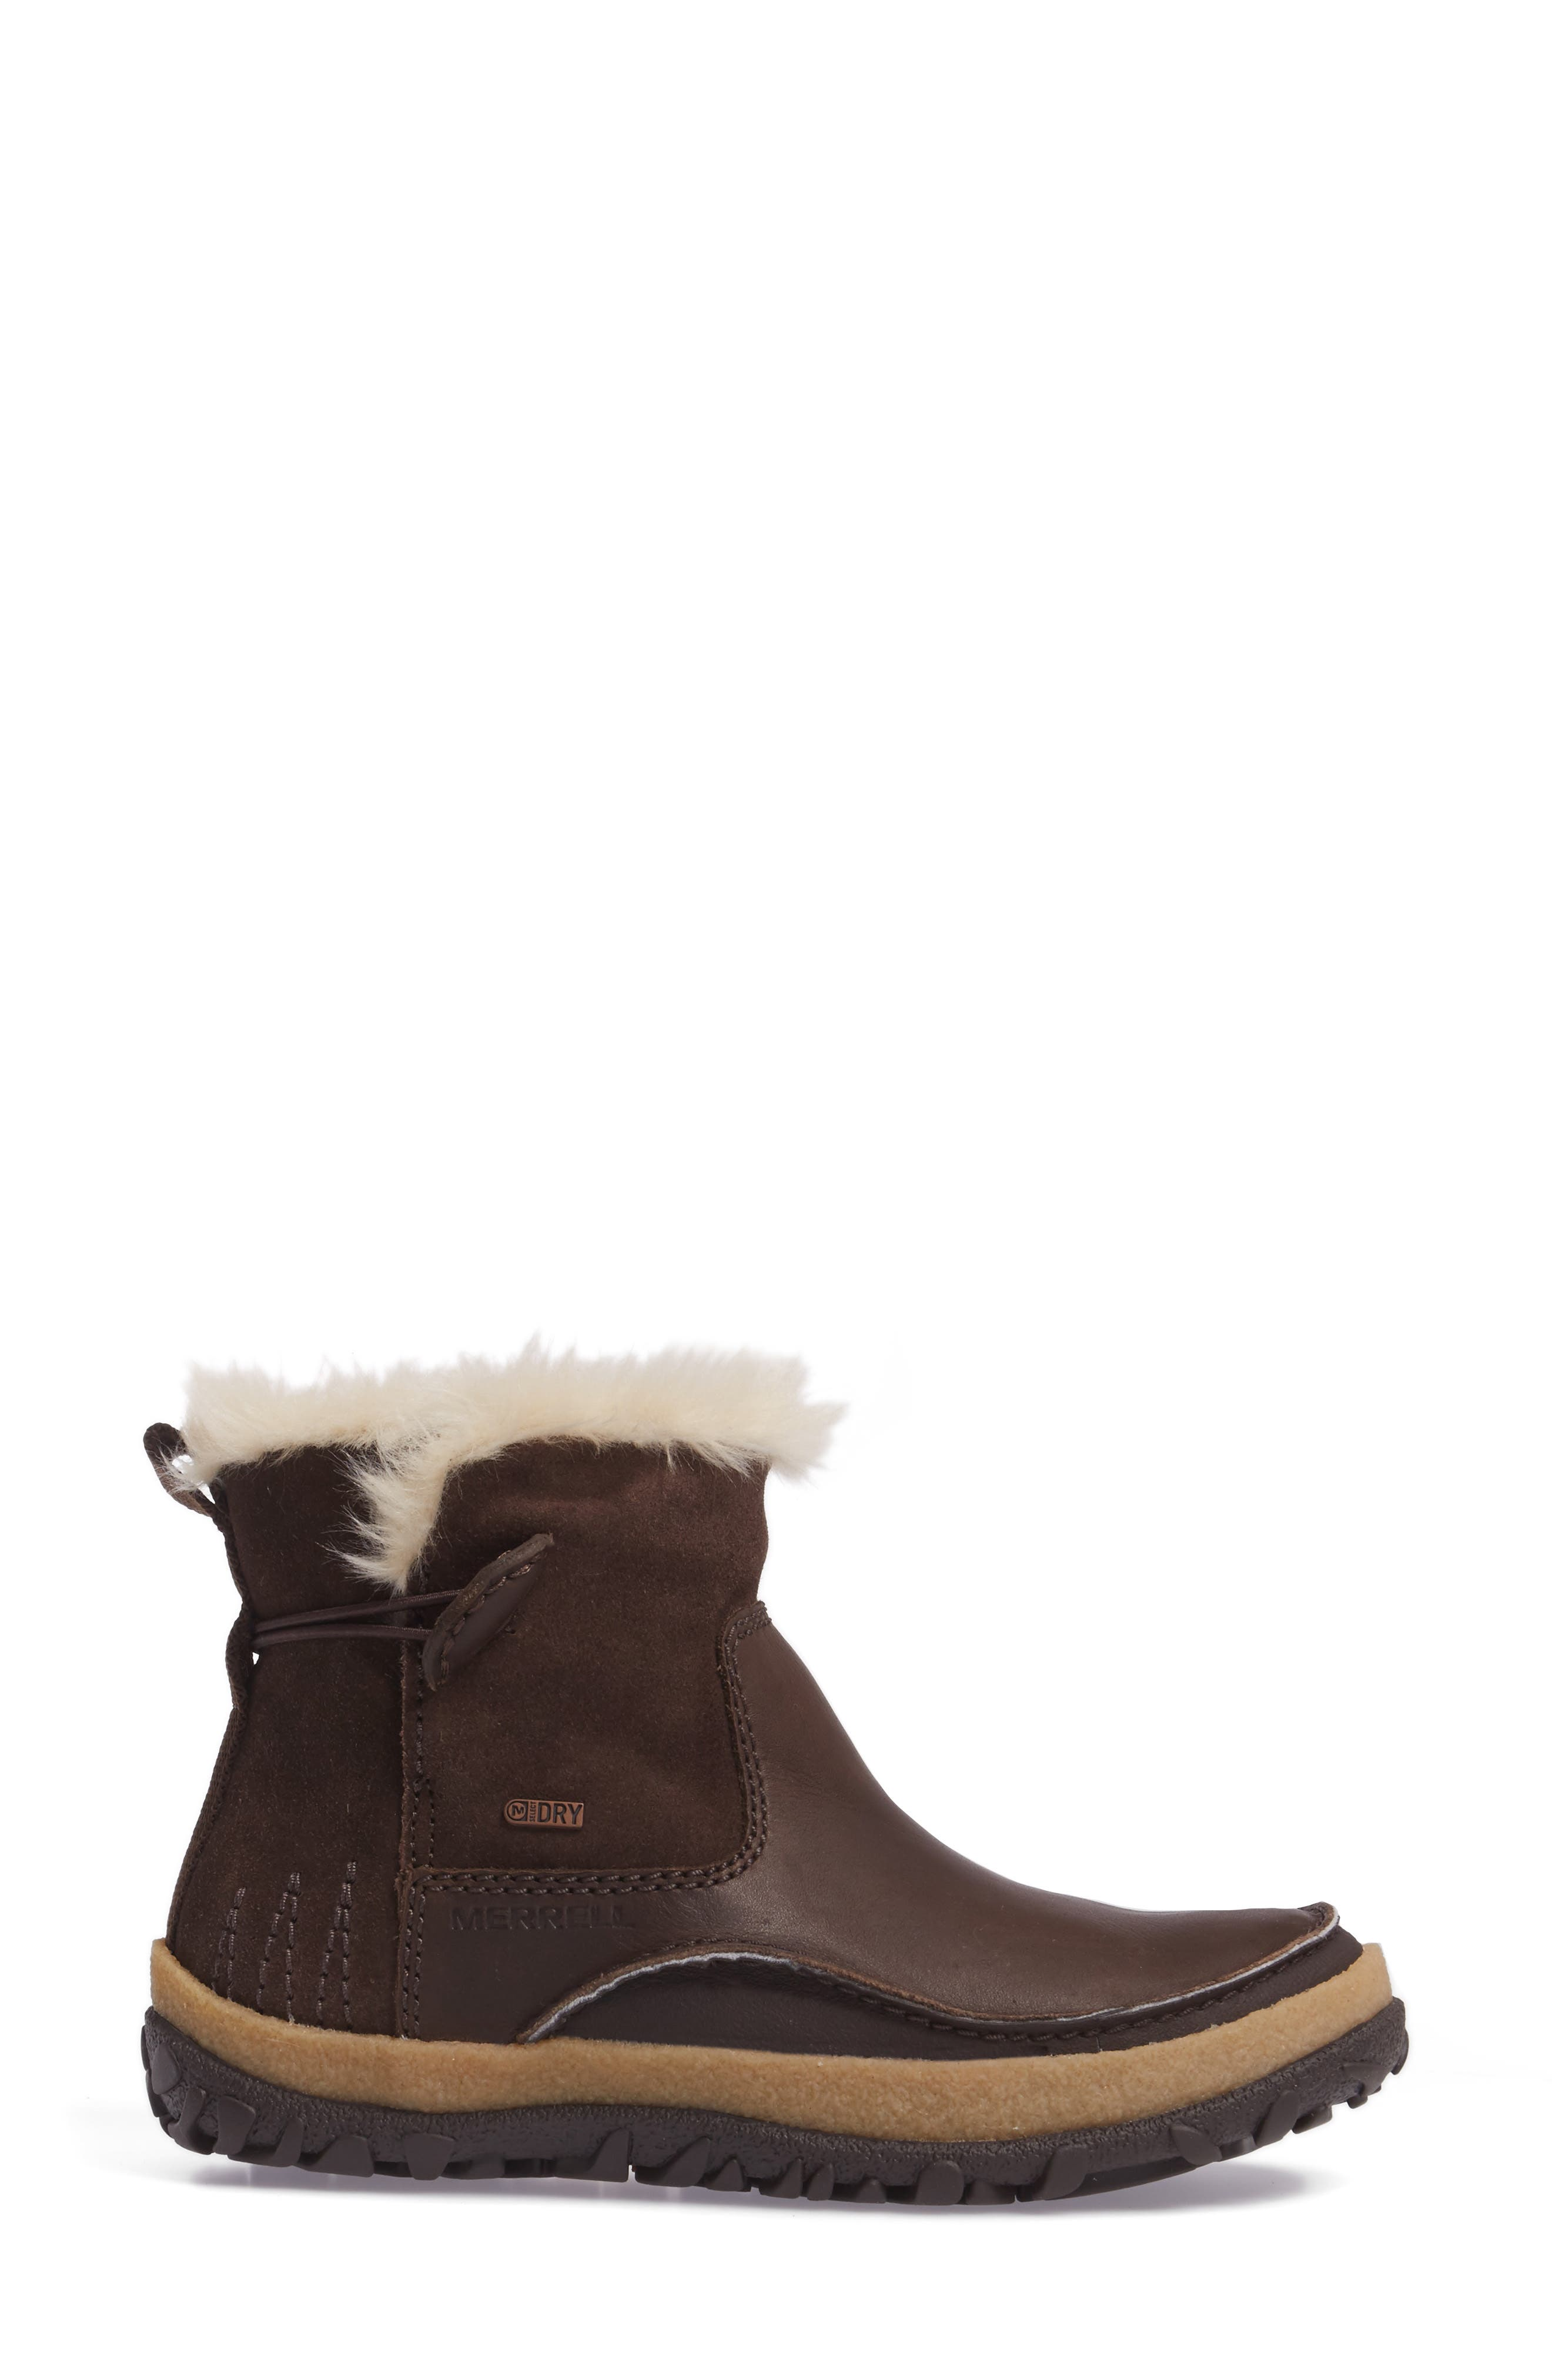 Tremblant Pull-On Polar Waterproof Bootie,                             Alternate thumbnail 11, color,